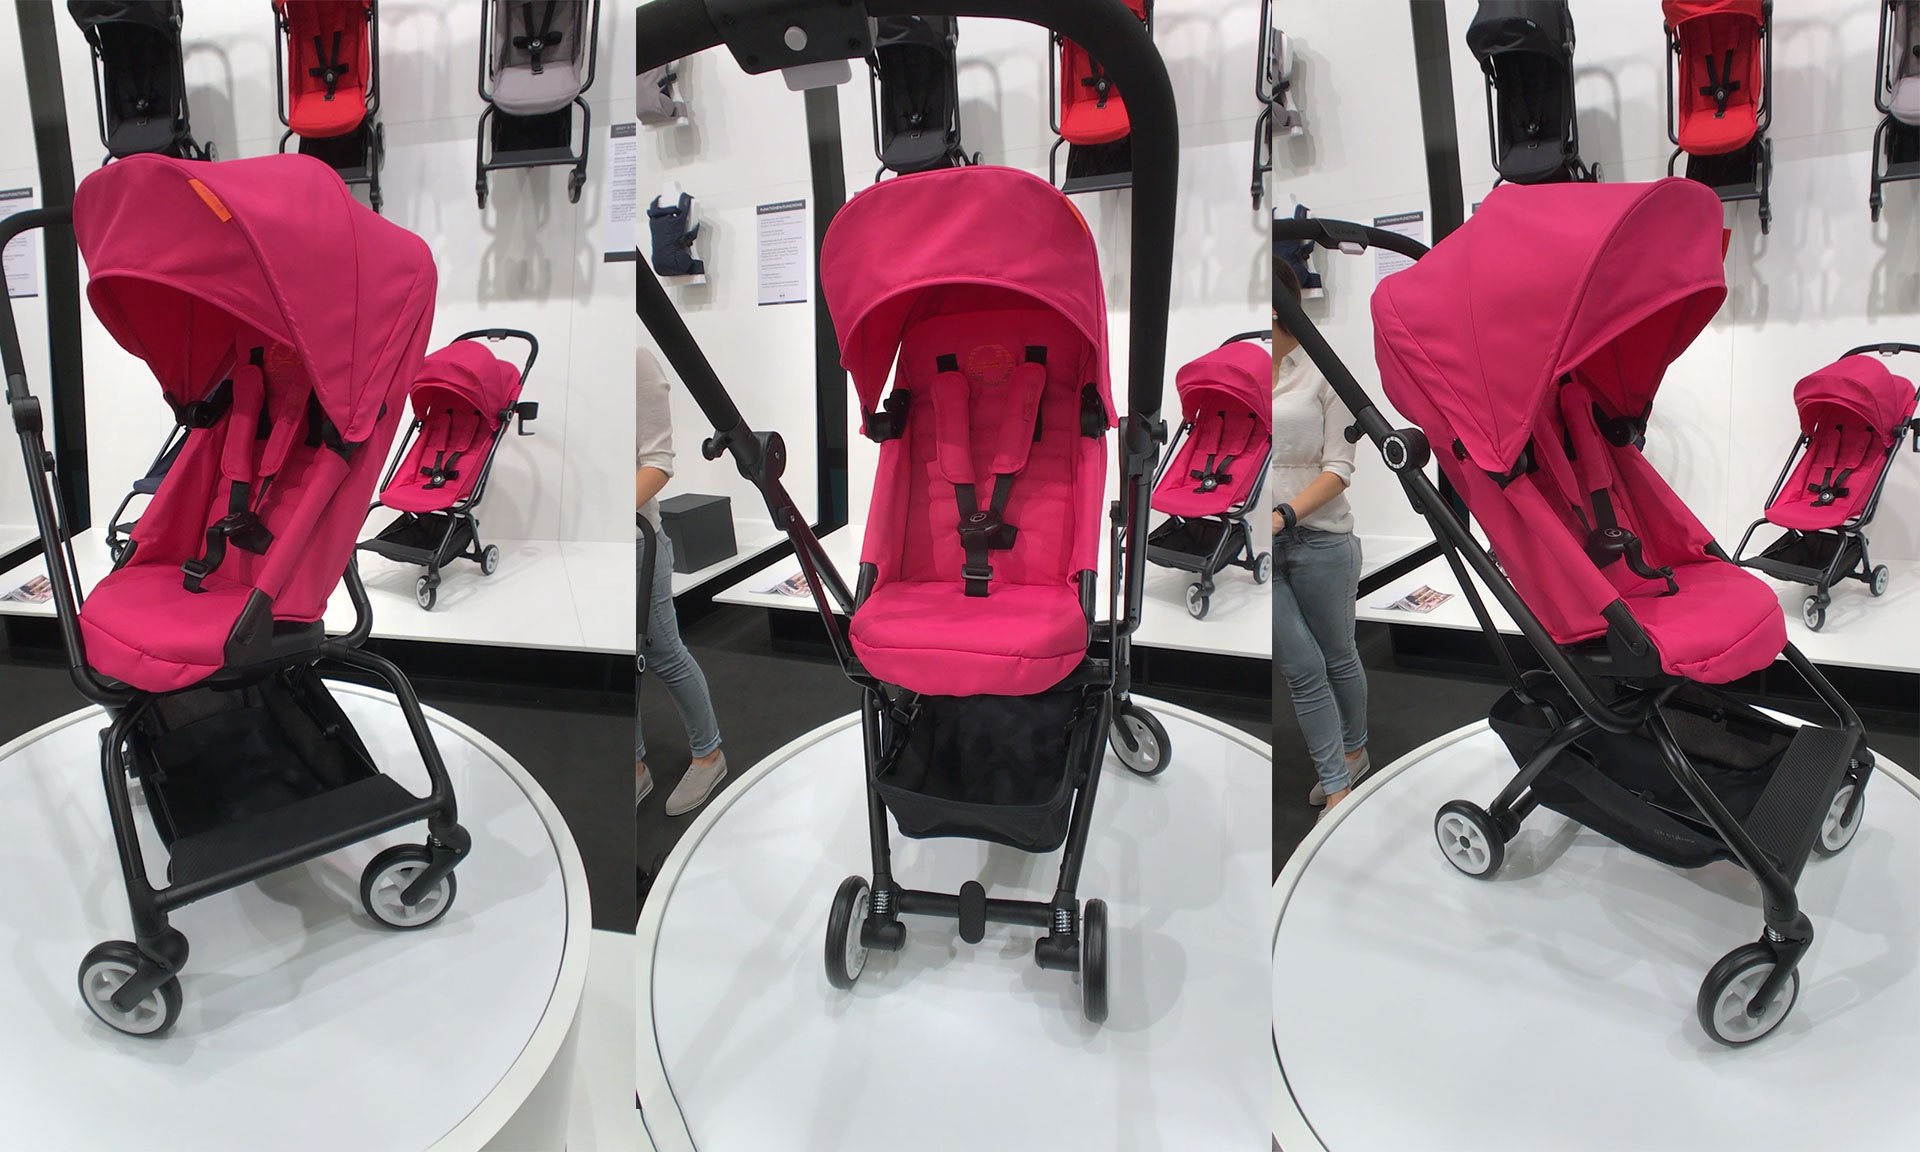 Cybex Stroller Eezy S Twist Cybex Launches New Eezy S Twist Stroller Which News